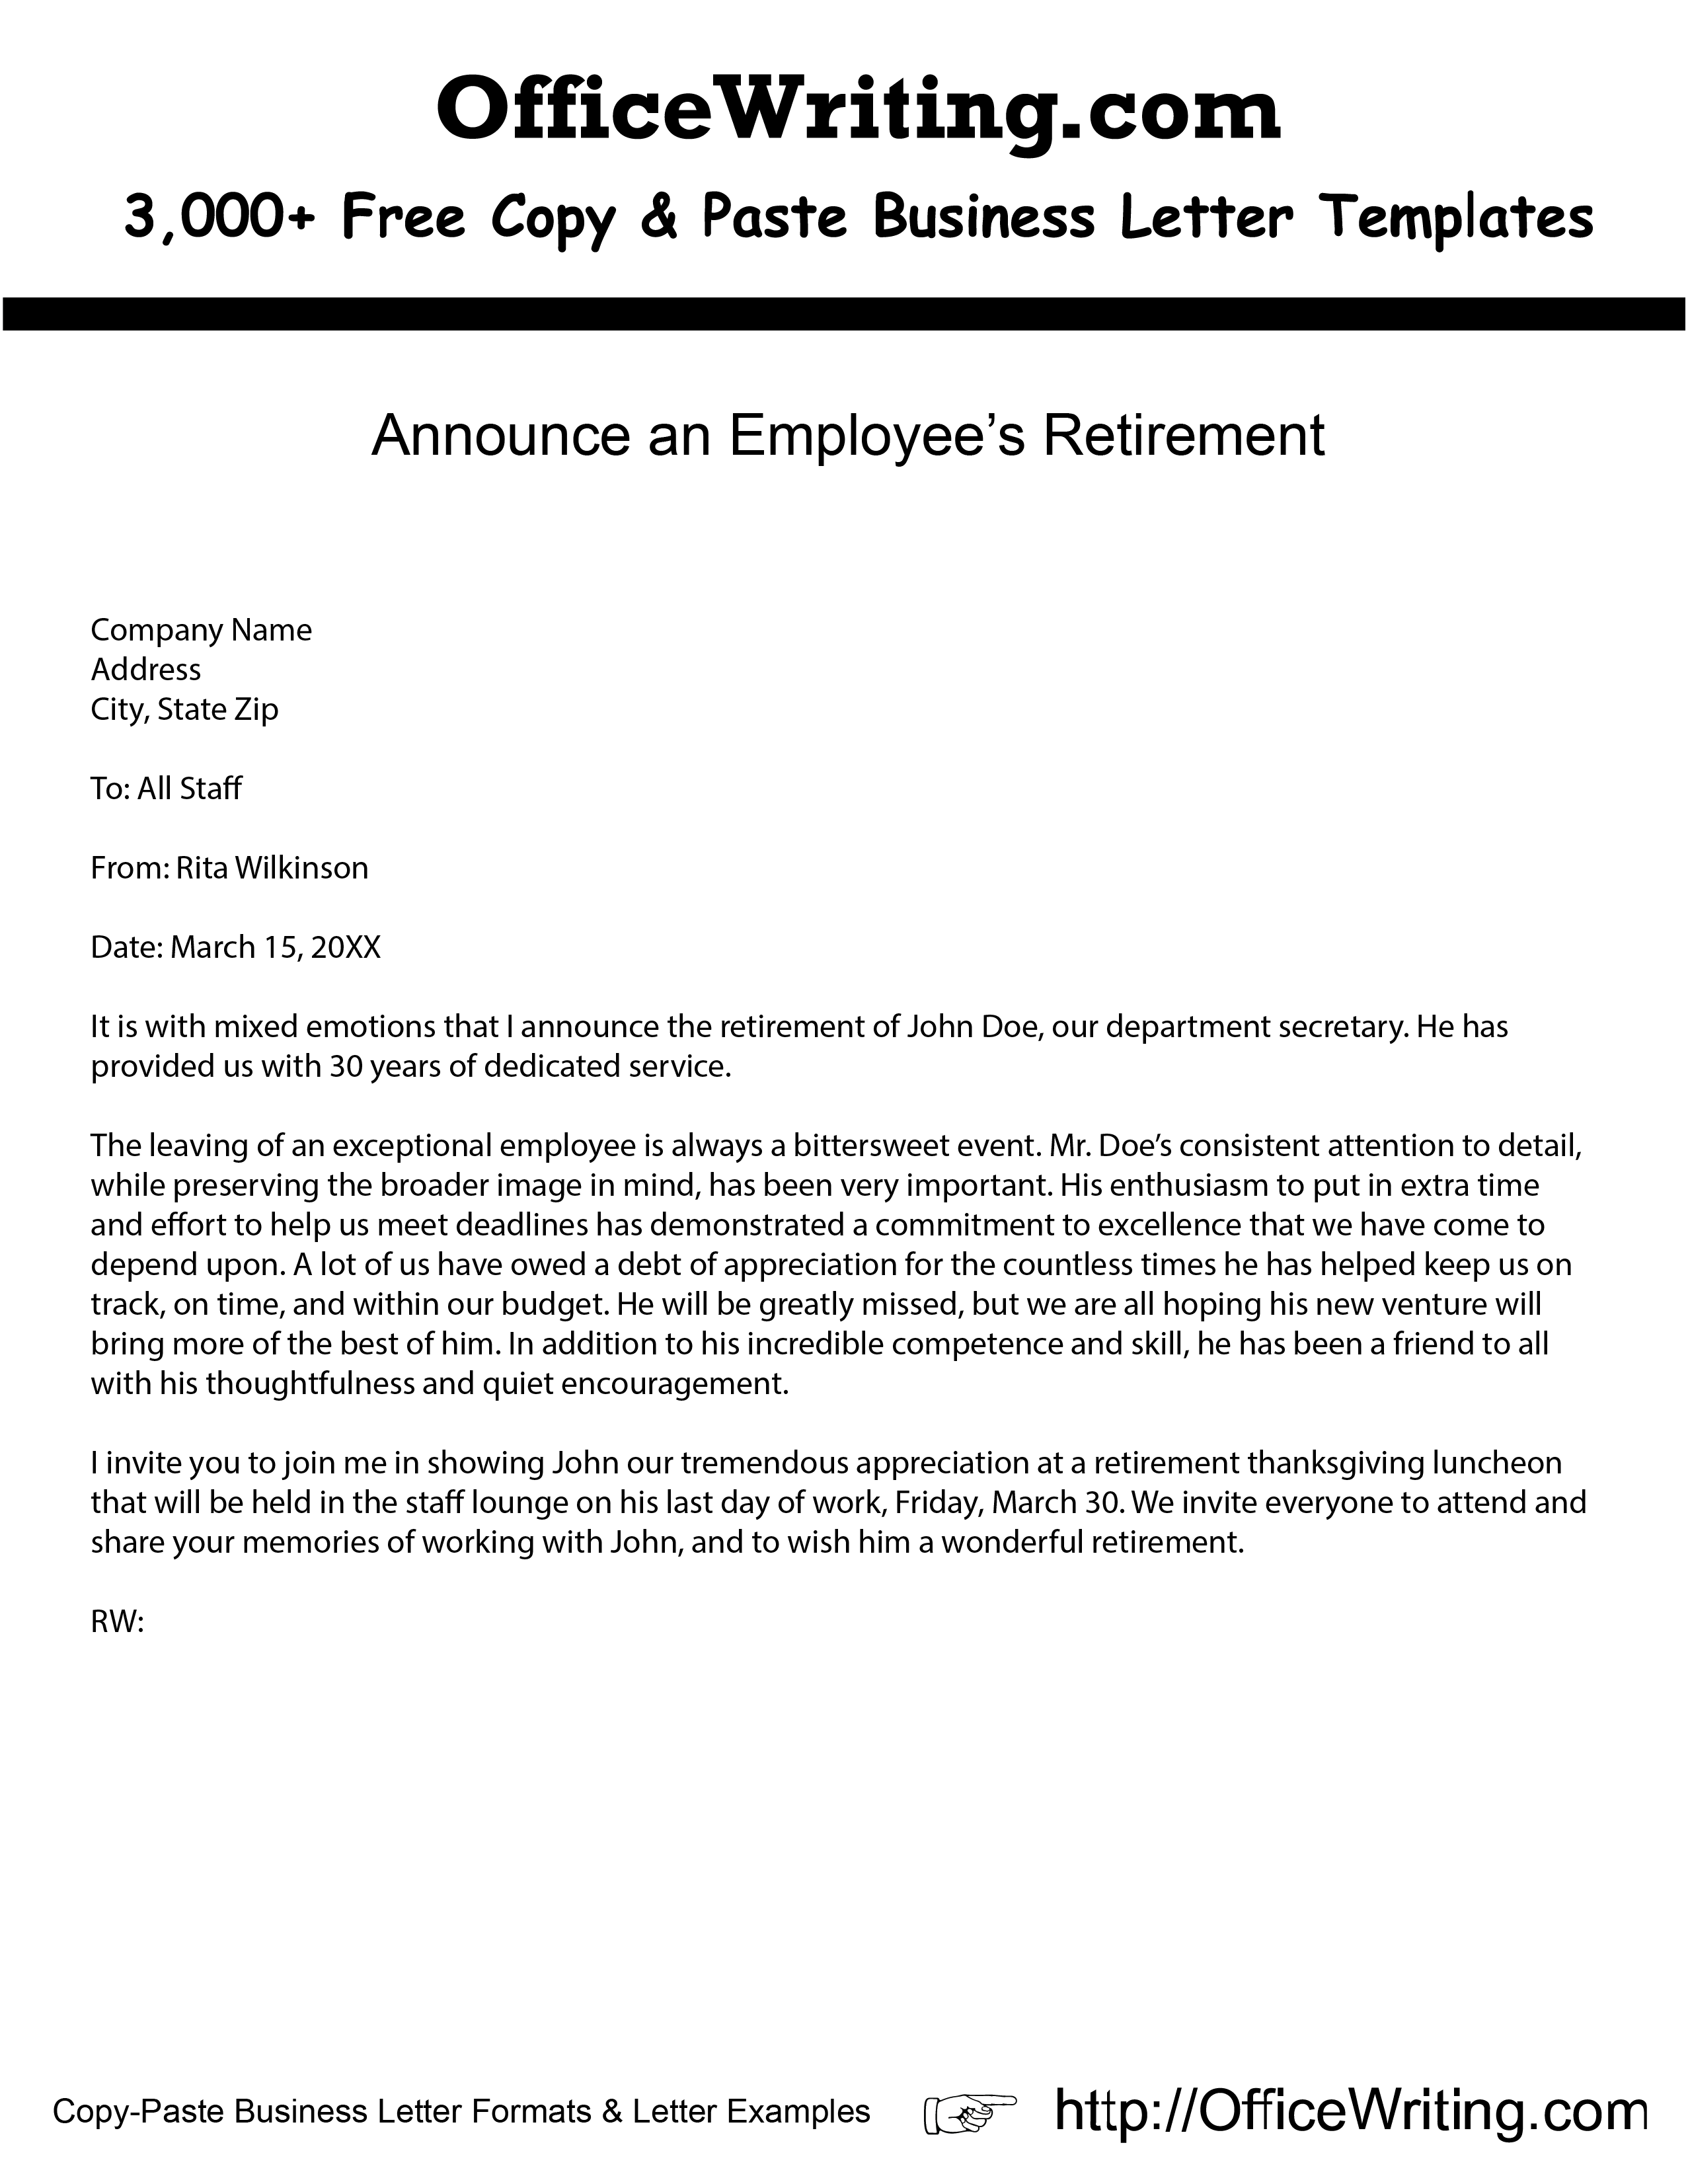 Announce an Employees Retirement We have over 3000 free sample